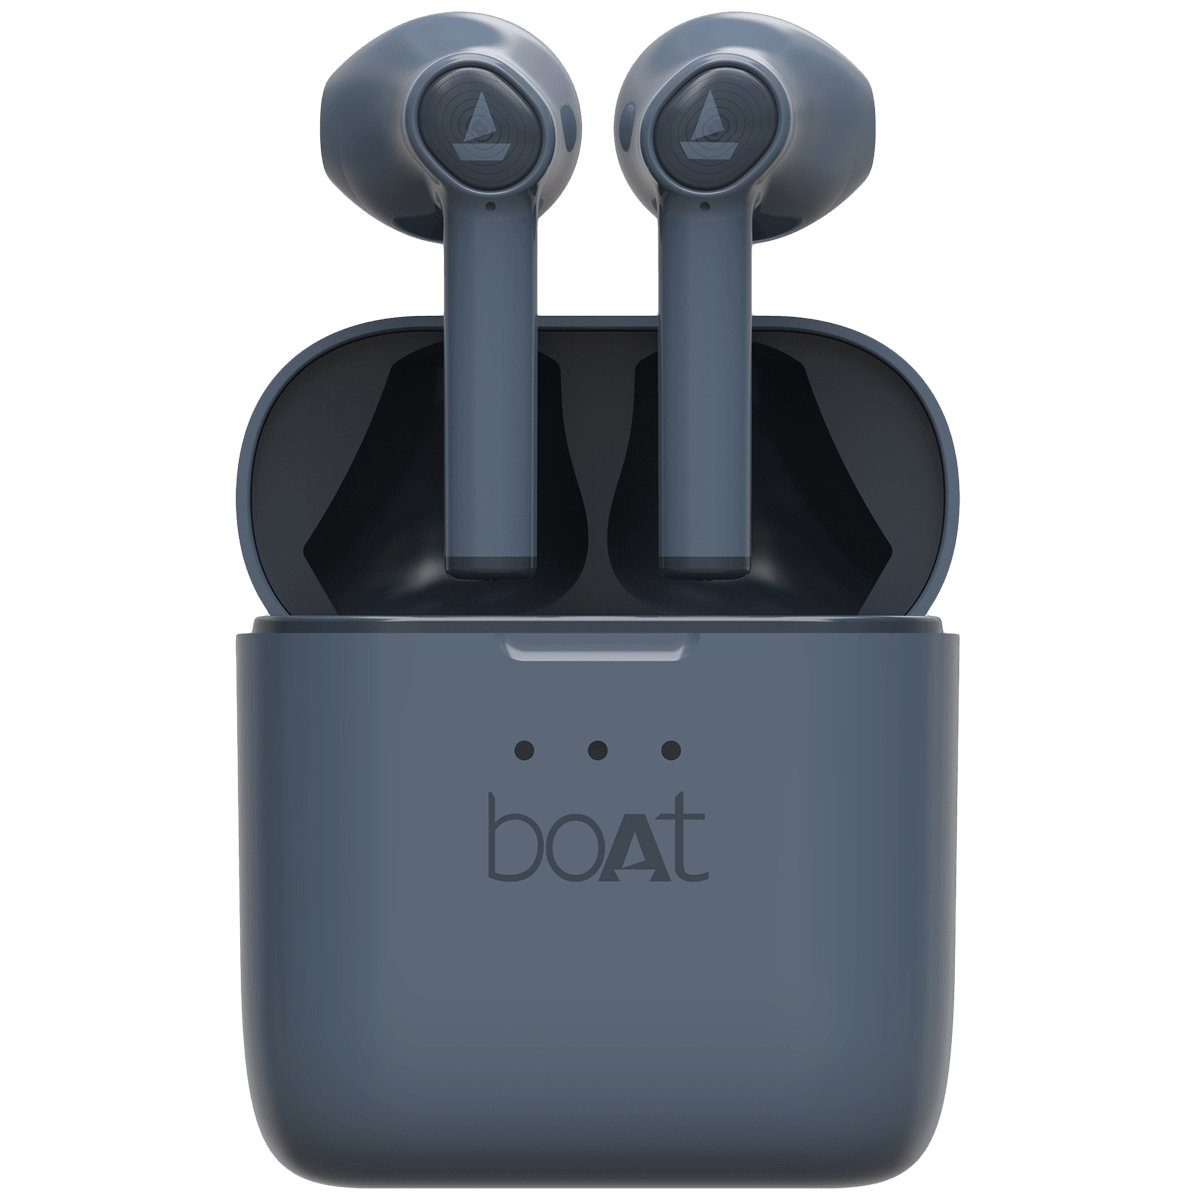 boAt Airdopes 138 In-Ear Truly Wireless Earbuds with Mic (Bluetooth 5.0, Voice Assistant Supported, Blue)